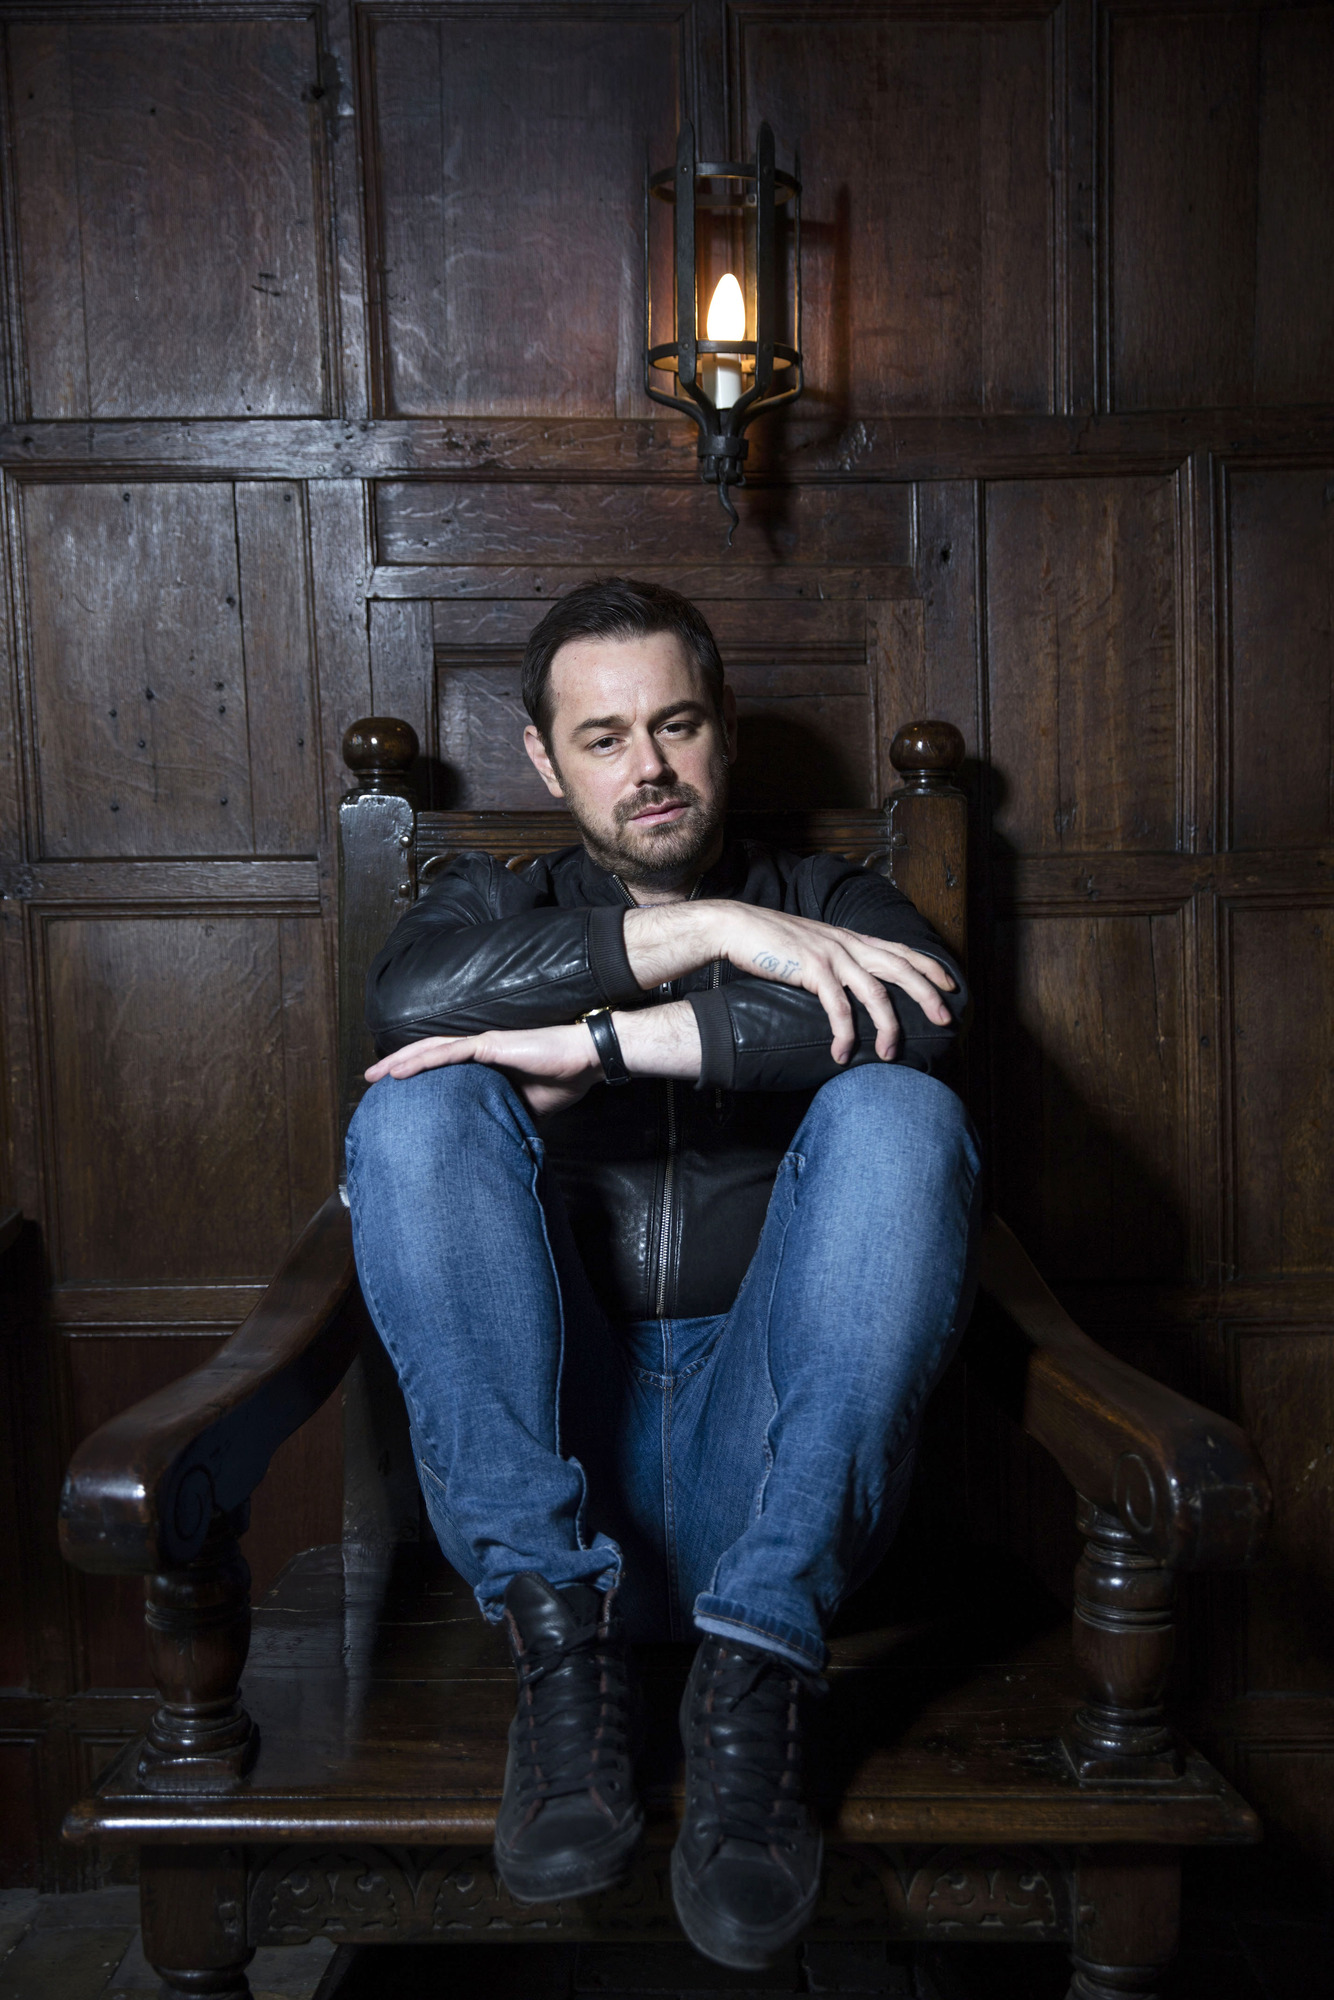 Danny Dyer BBC Pictures Who Do You Think You Are?